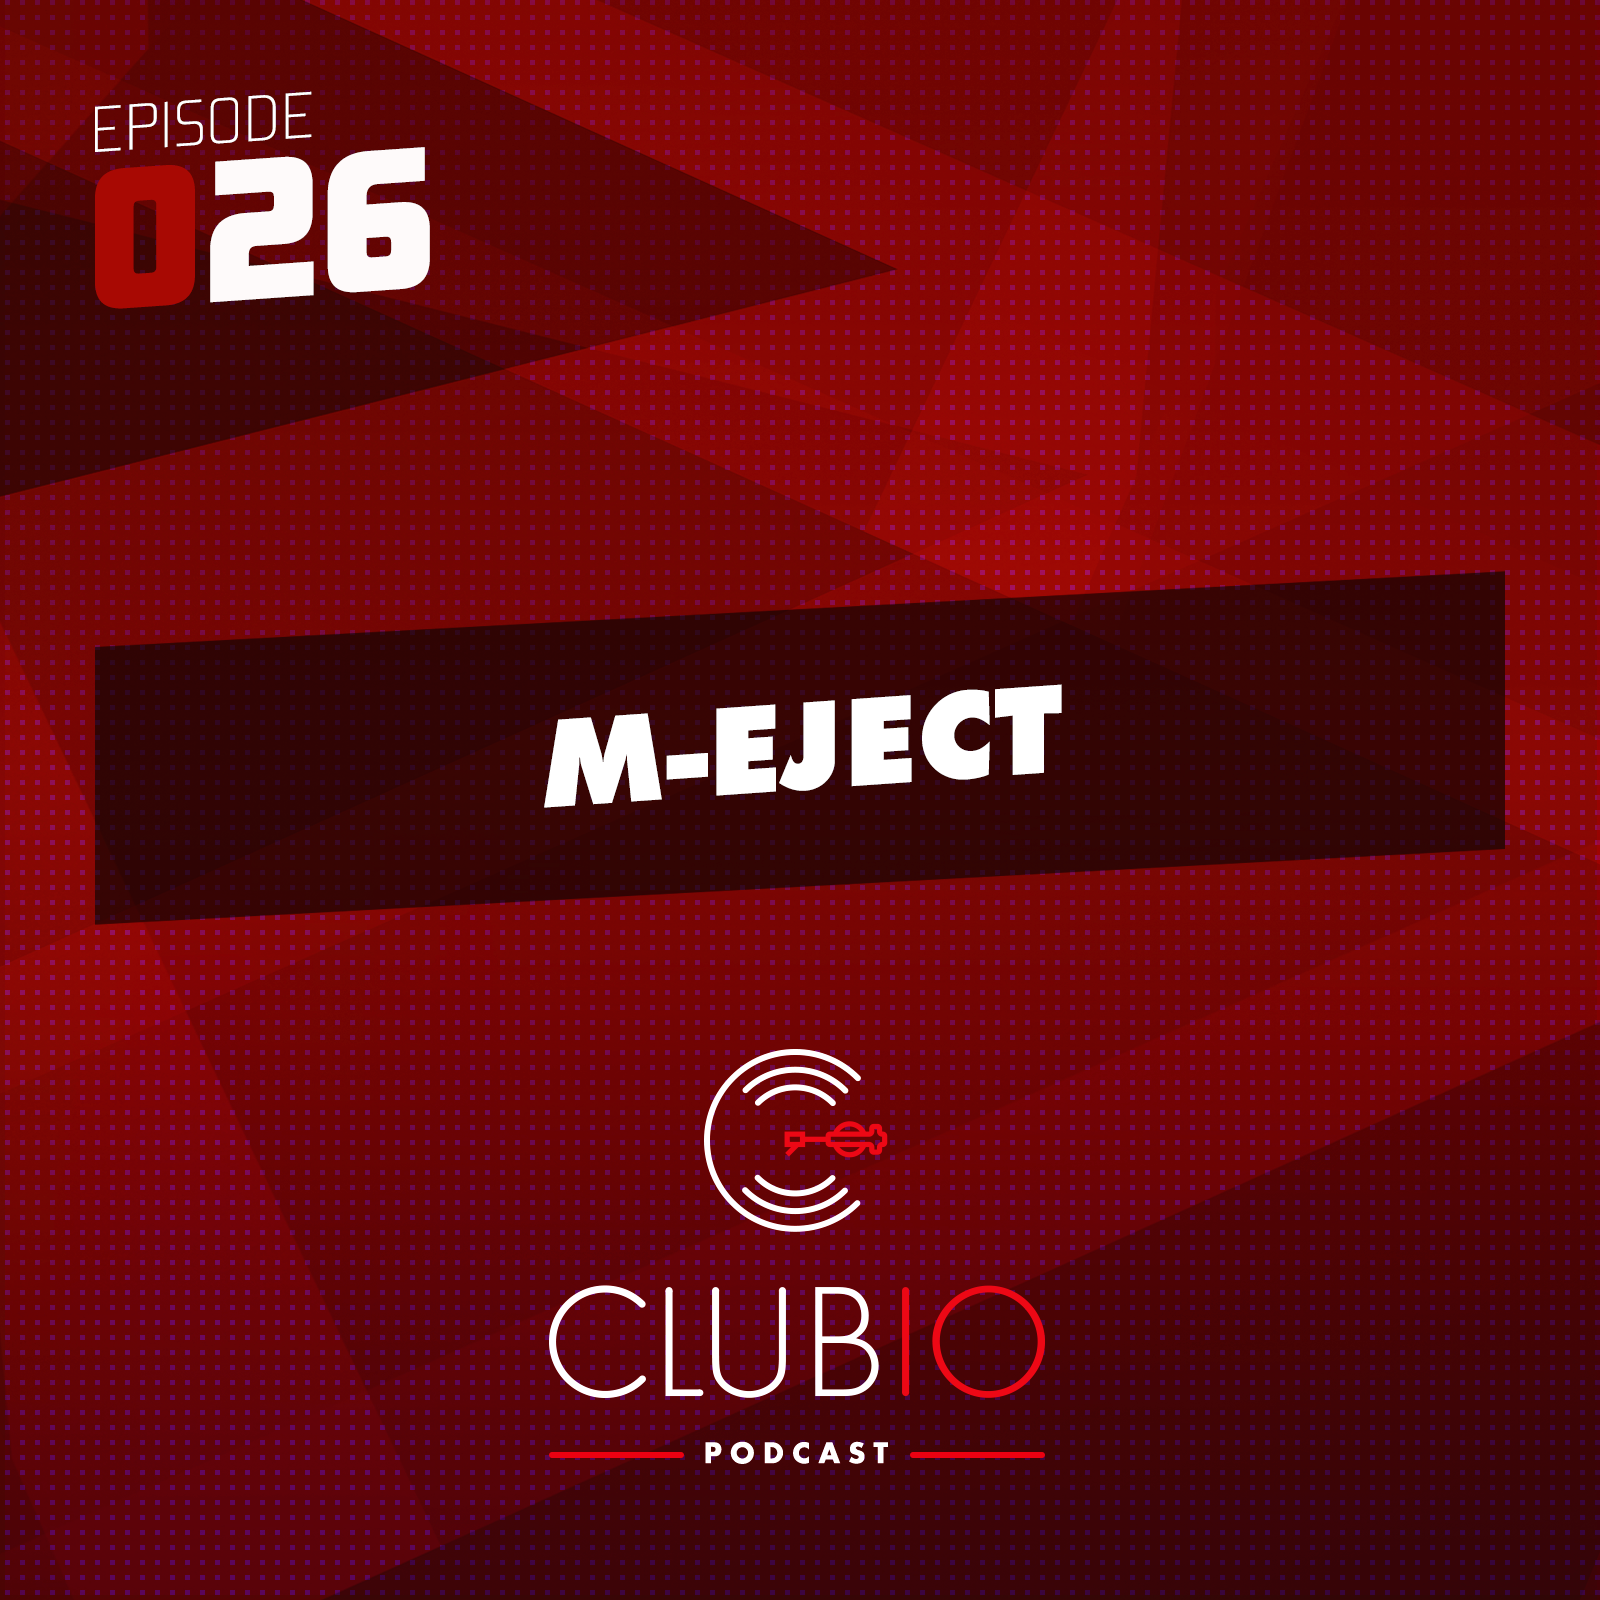 Clubio Podcast 026 - M-Eject